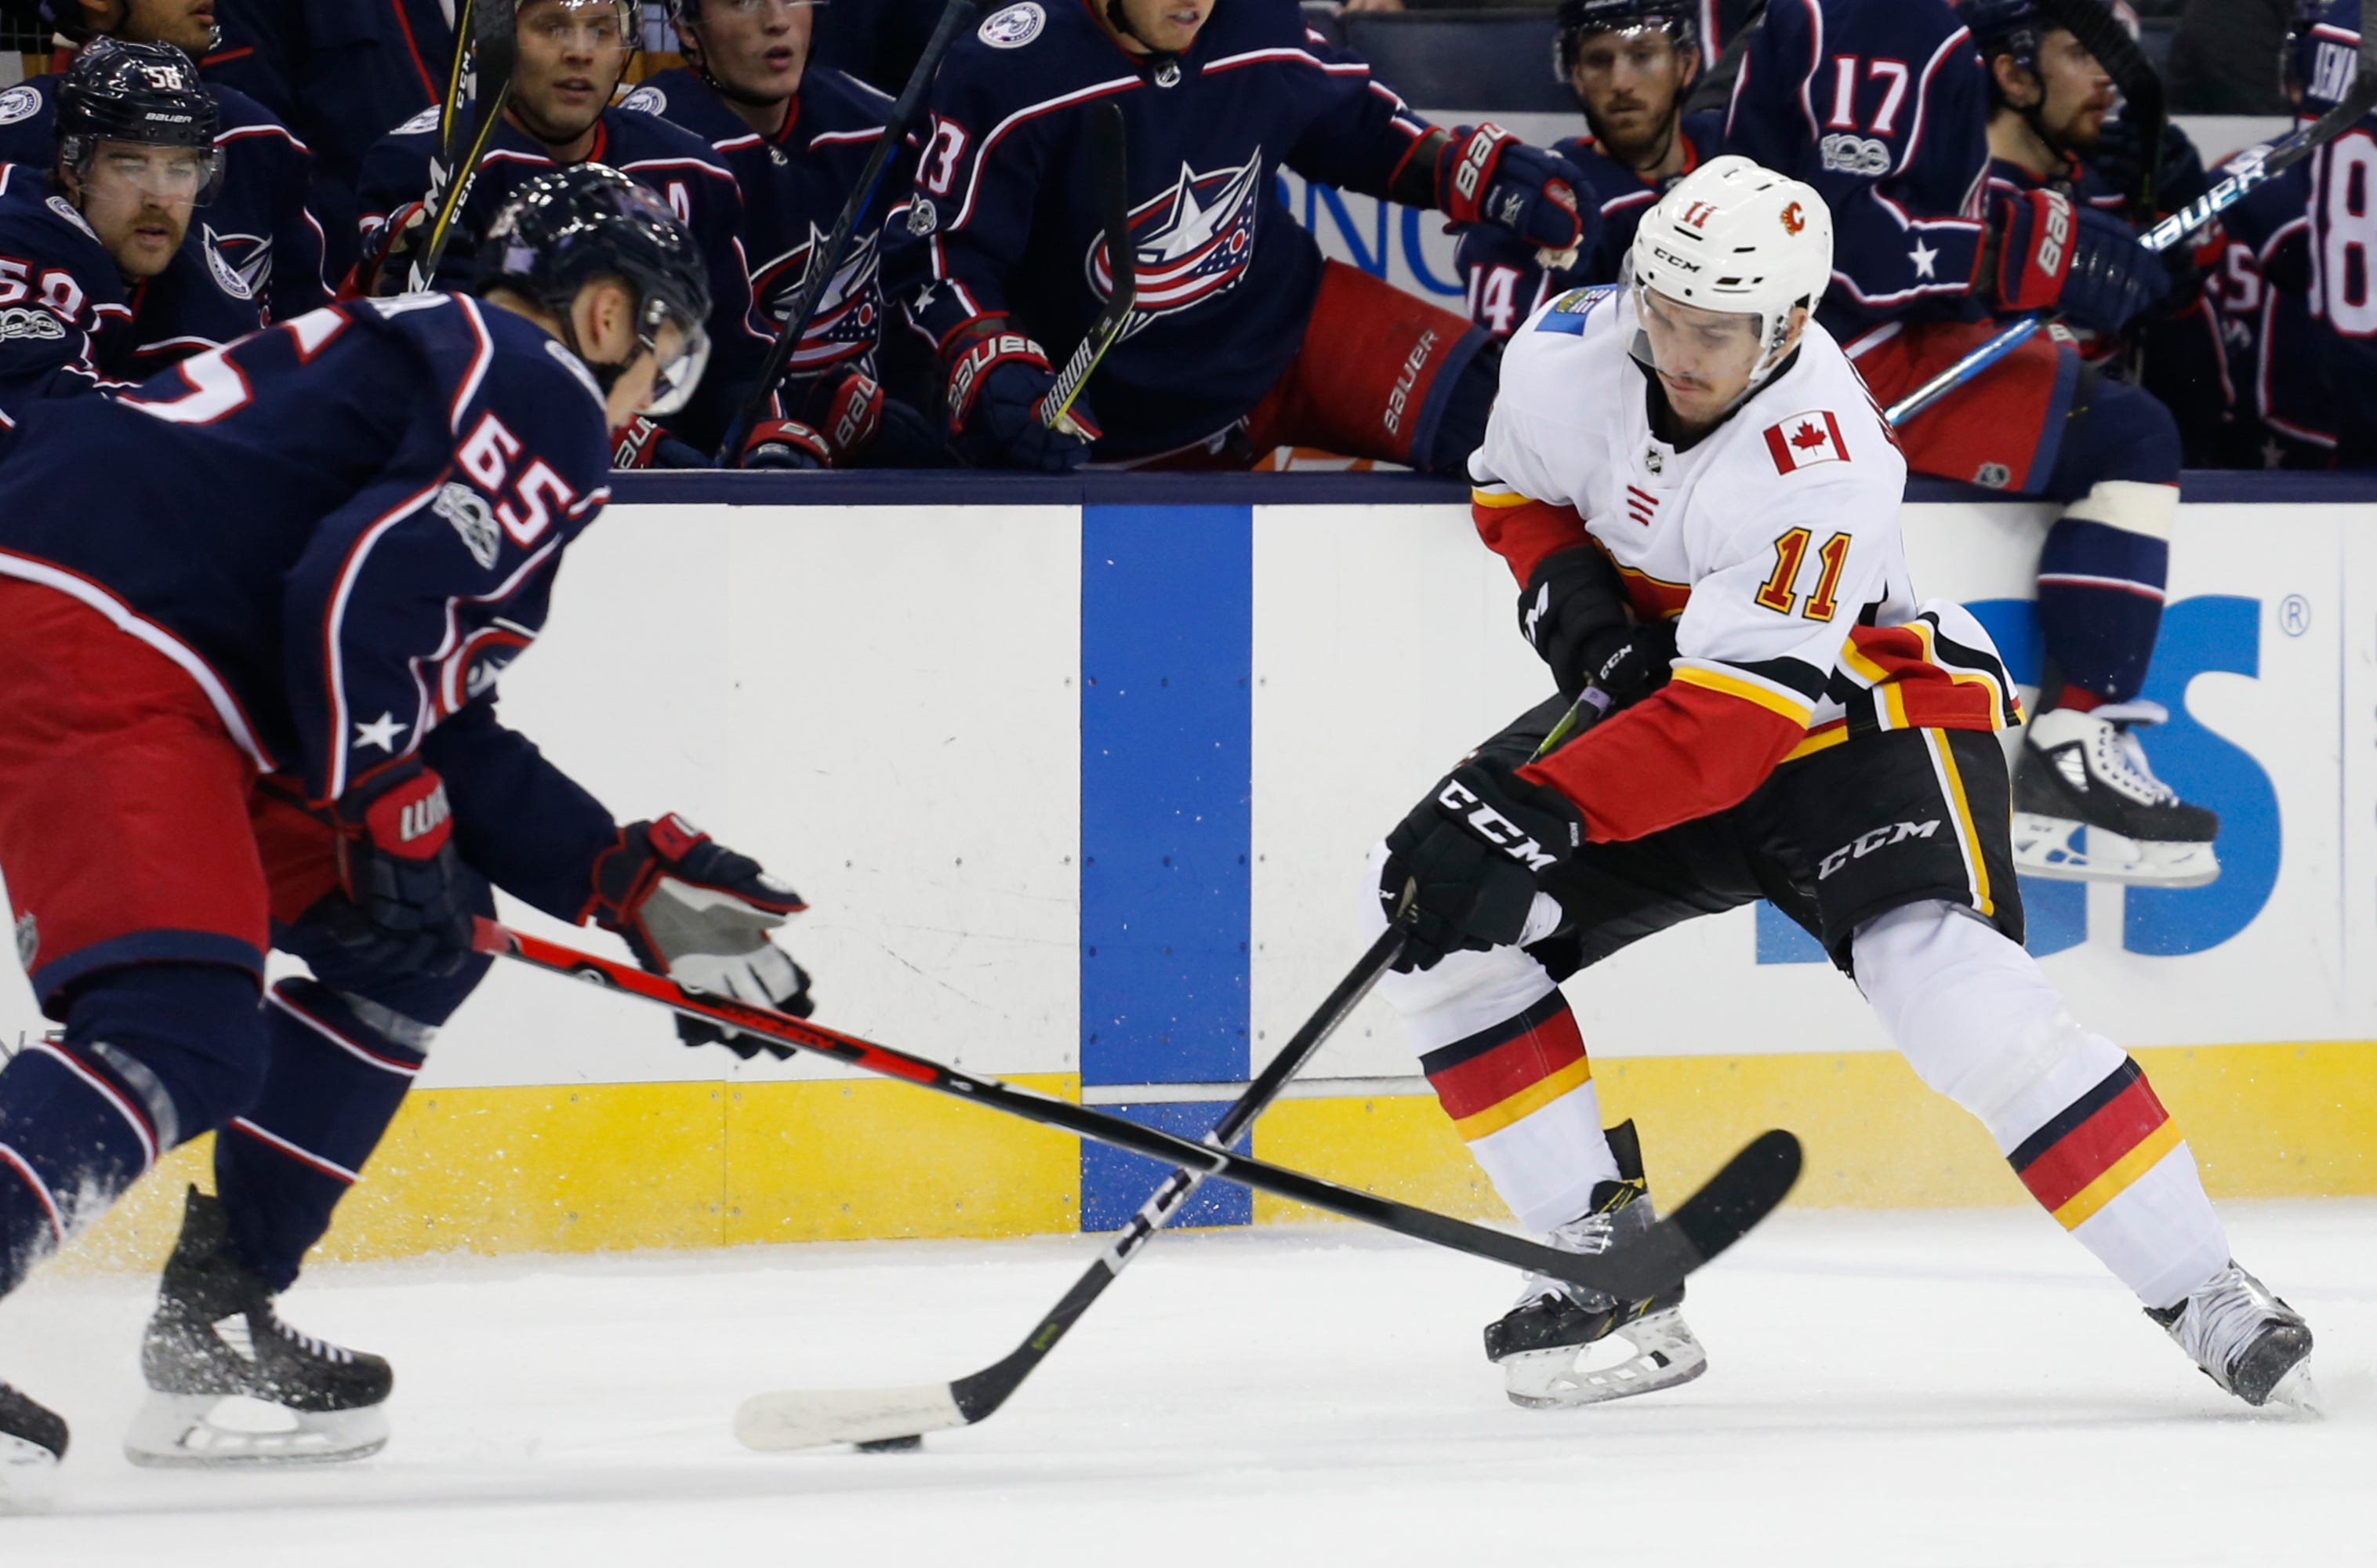 ... in OT gives Blue Jackets 1-0 win over Flames Josh Anderson scored two  minutes into overtime to give the Columbus Blue Jackets their fifth straight  win 7e8a37250